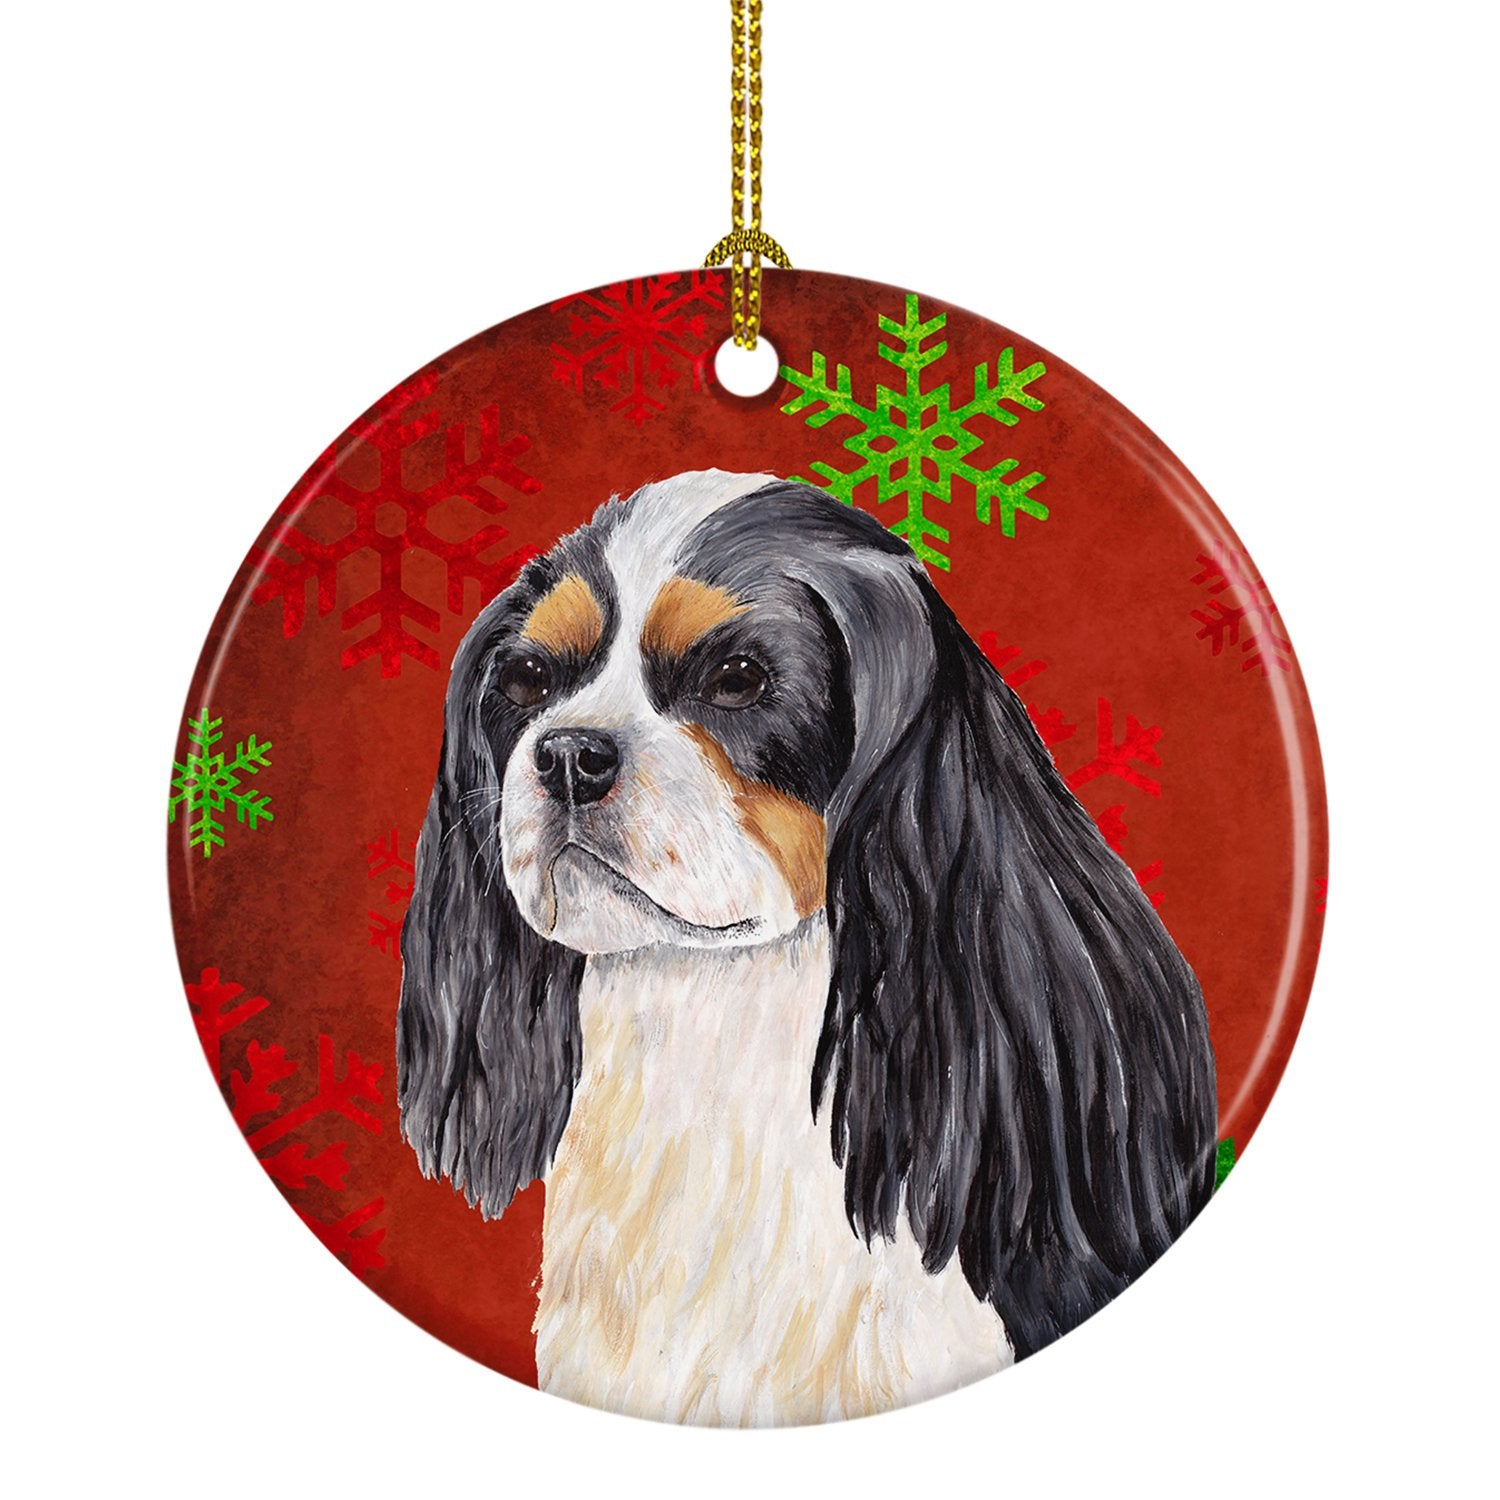 Cavalier Spaniel Red Snowflakes Holiday Christmas Ceramic Ornament SC9431 by Caroline's Treasures